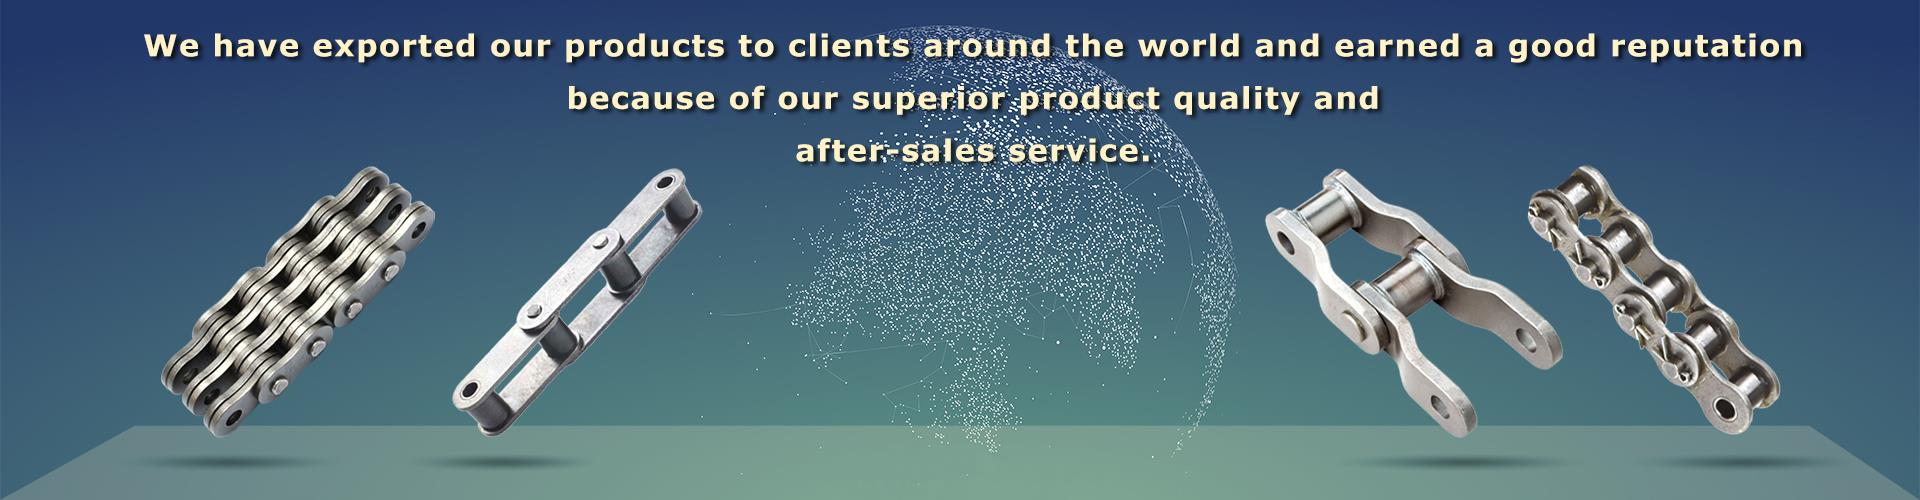 Customization  made in China - replacement parts -  in Nurenberg Germany  High Accuracy POM Spur Reducer Gears with Motor Planetary Gear Set with ce certificate top quality low price